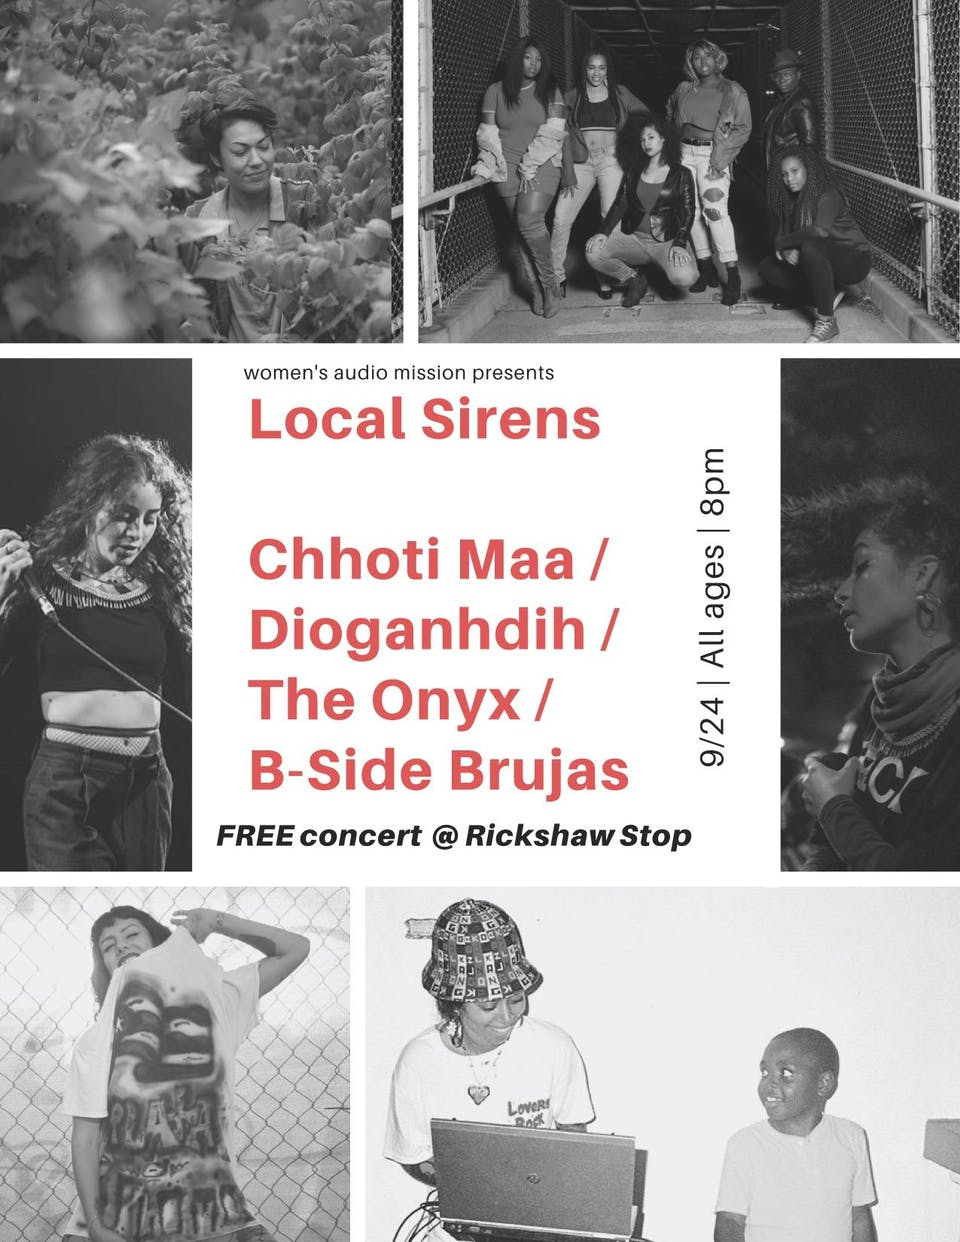 Local Sirens Series: Chhoti Maa, The Onyx, Dioganhdih, The B-Side Brujas